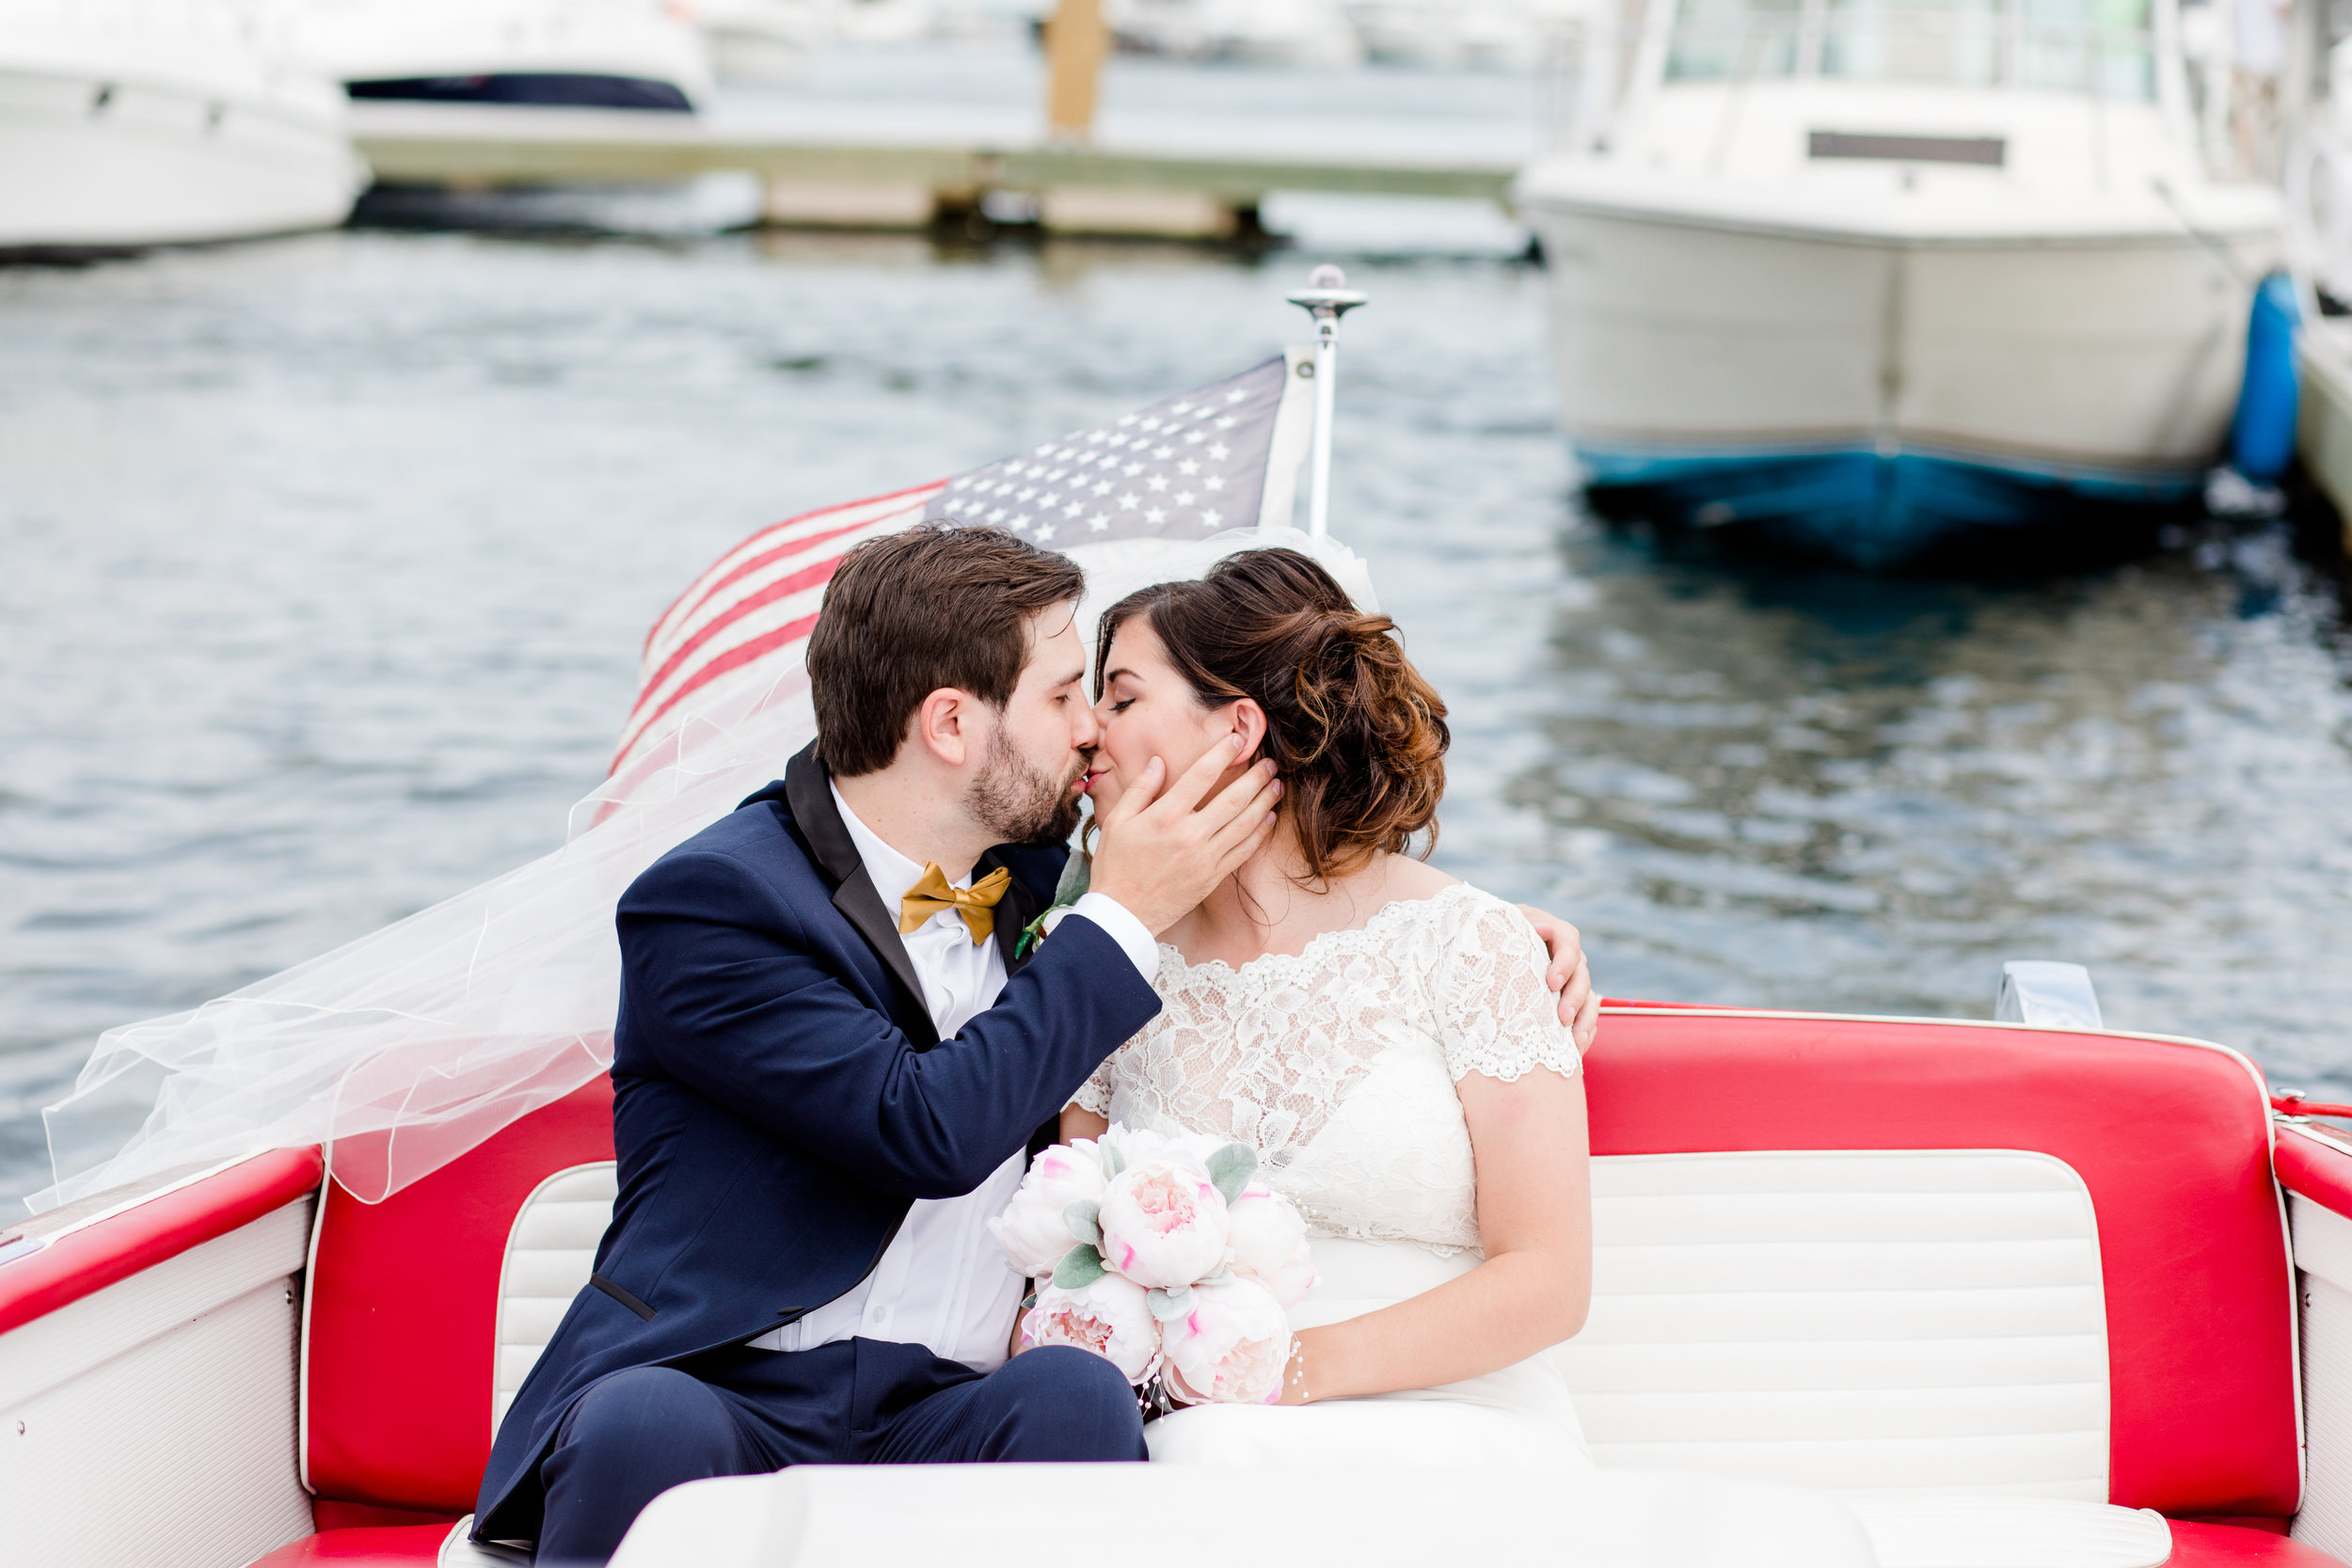 Brianne + James aboard their nautical transport to their Custom House Maritime Museum wedding (Newburyport, MA)